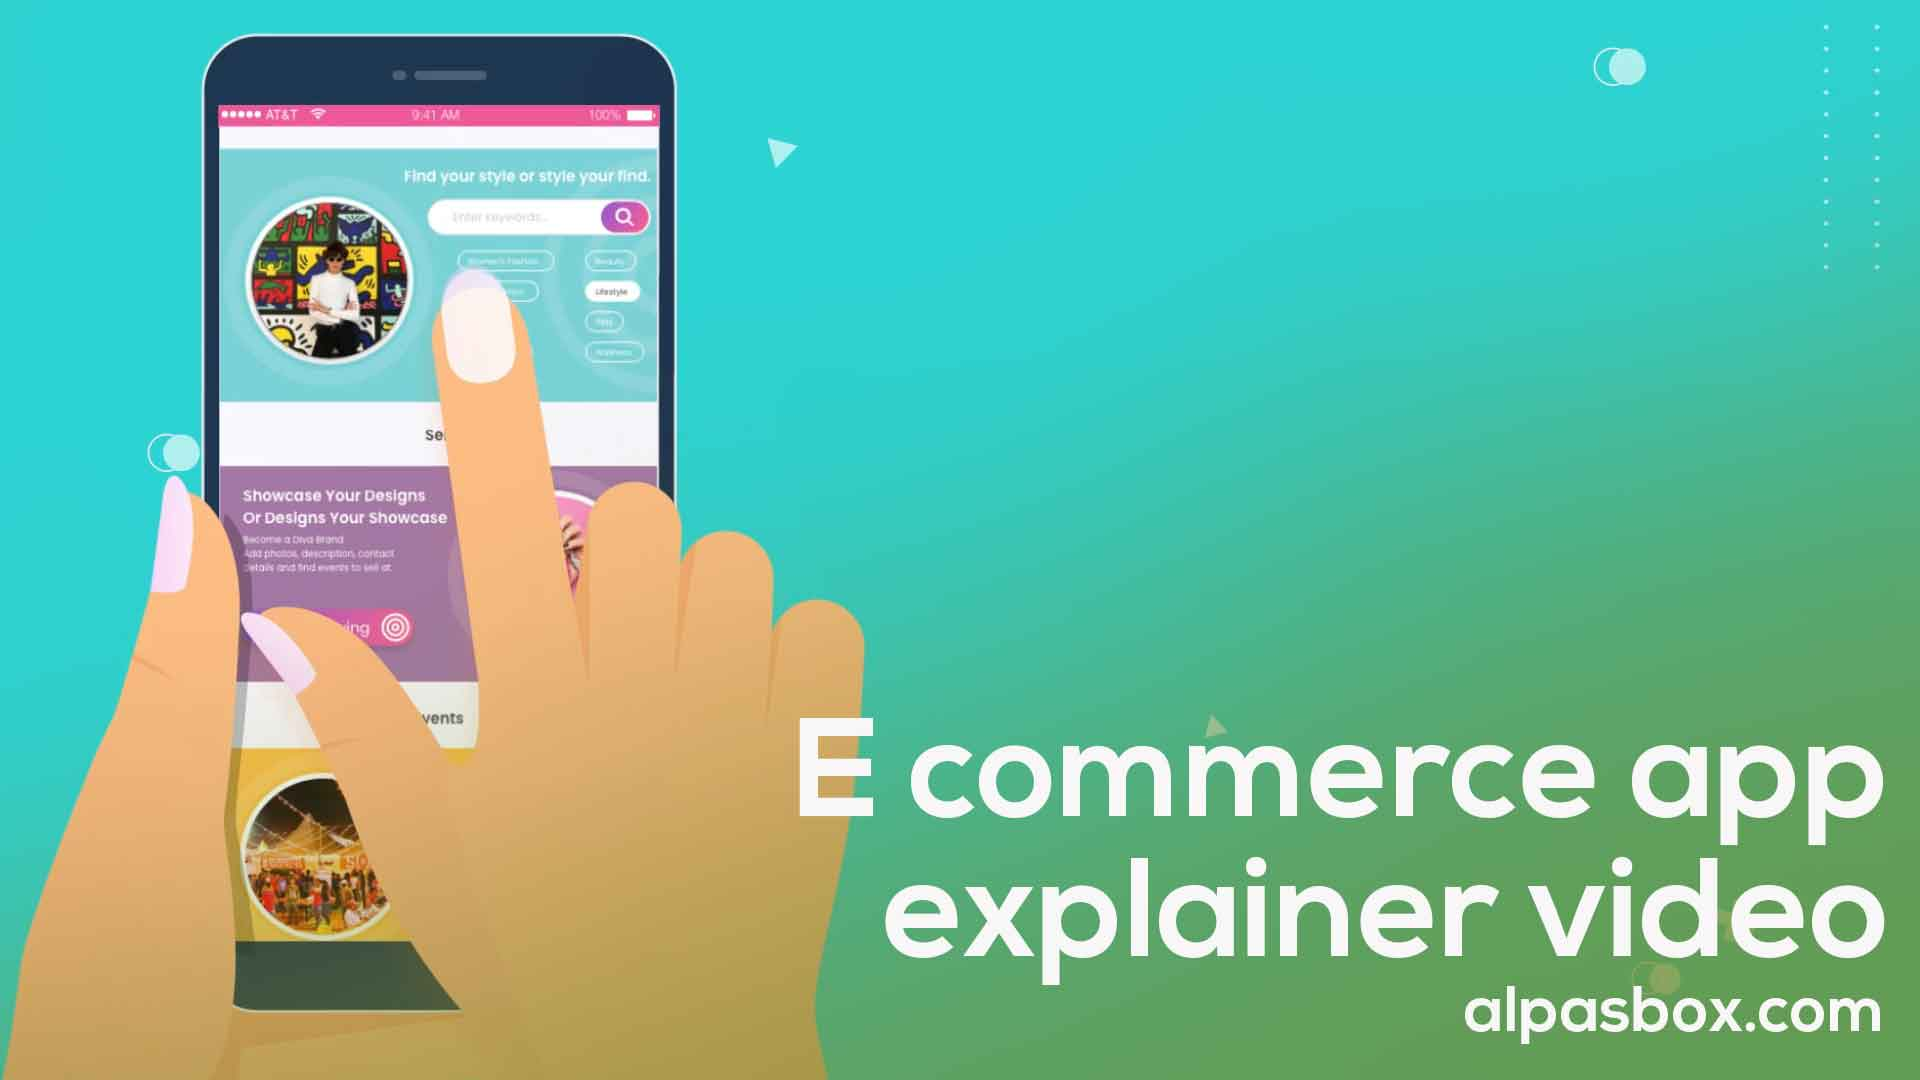 e commerce explainer video